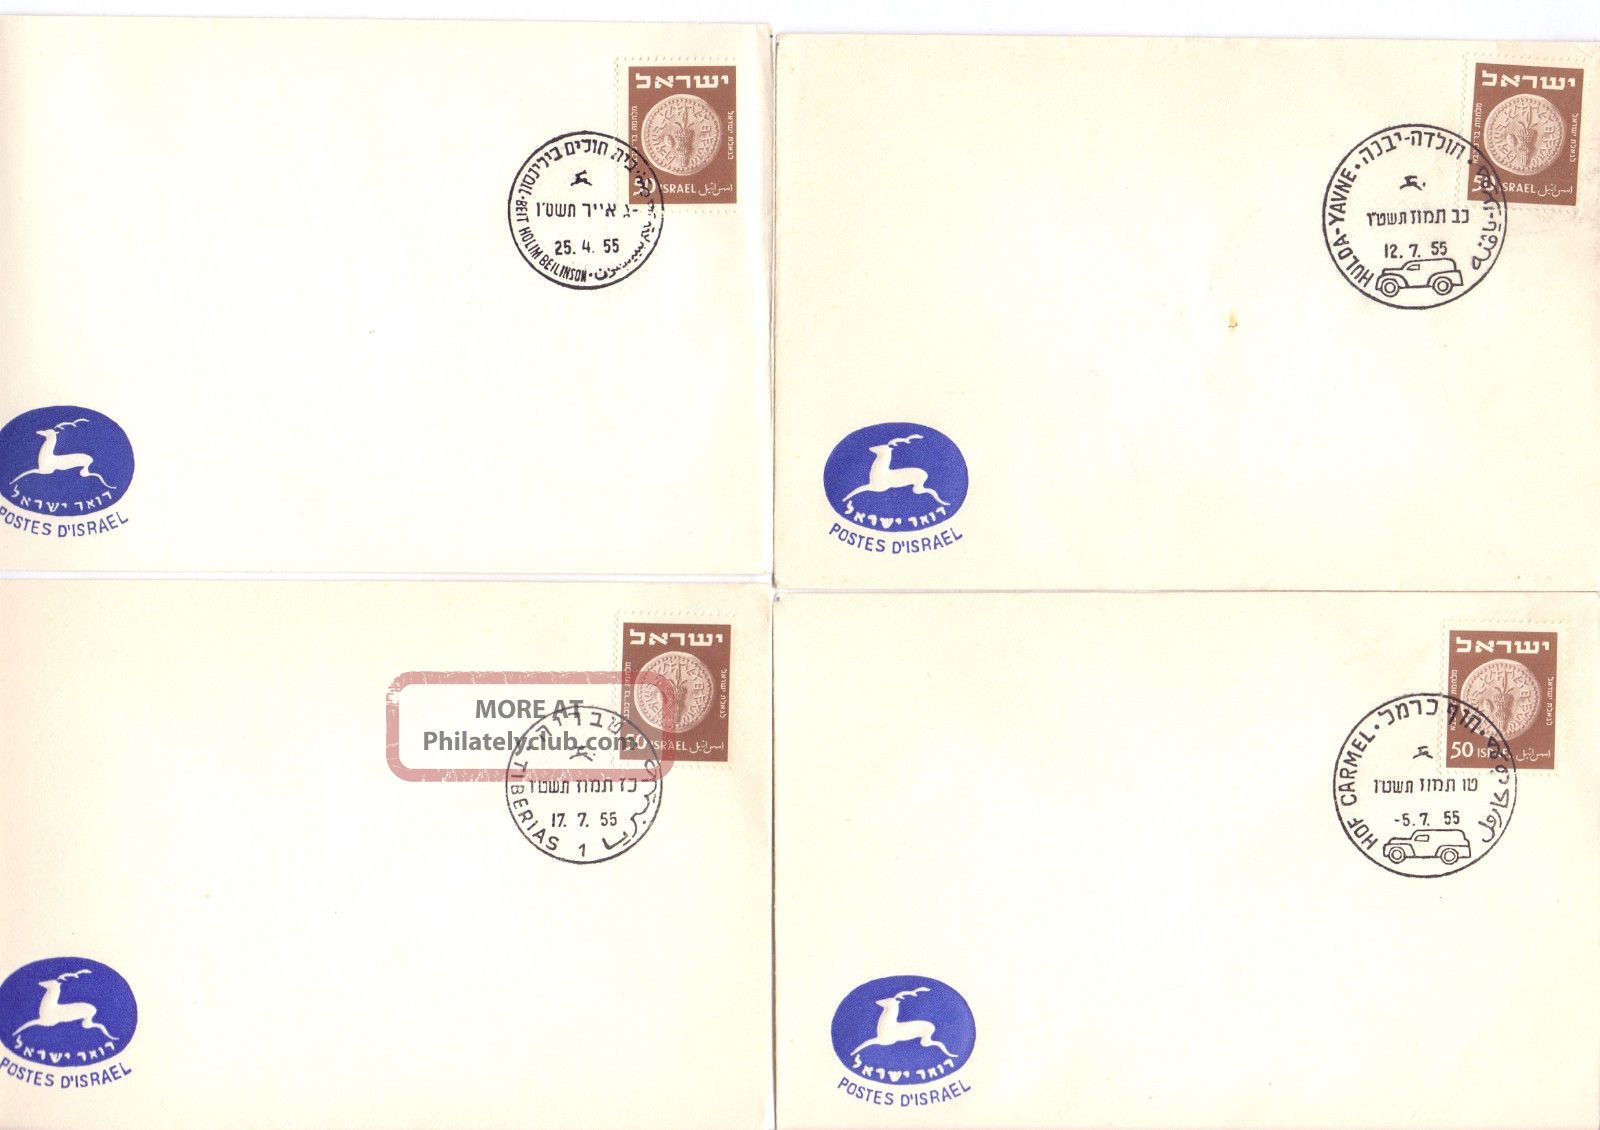 Postal History 1955 Cover Judaica Scott 43 Envelope 4 Post Office Opening Middle East photo